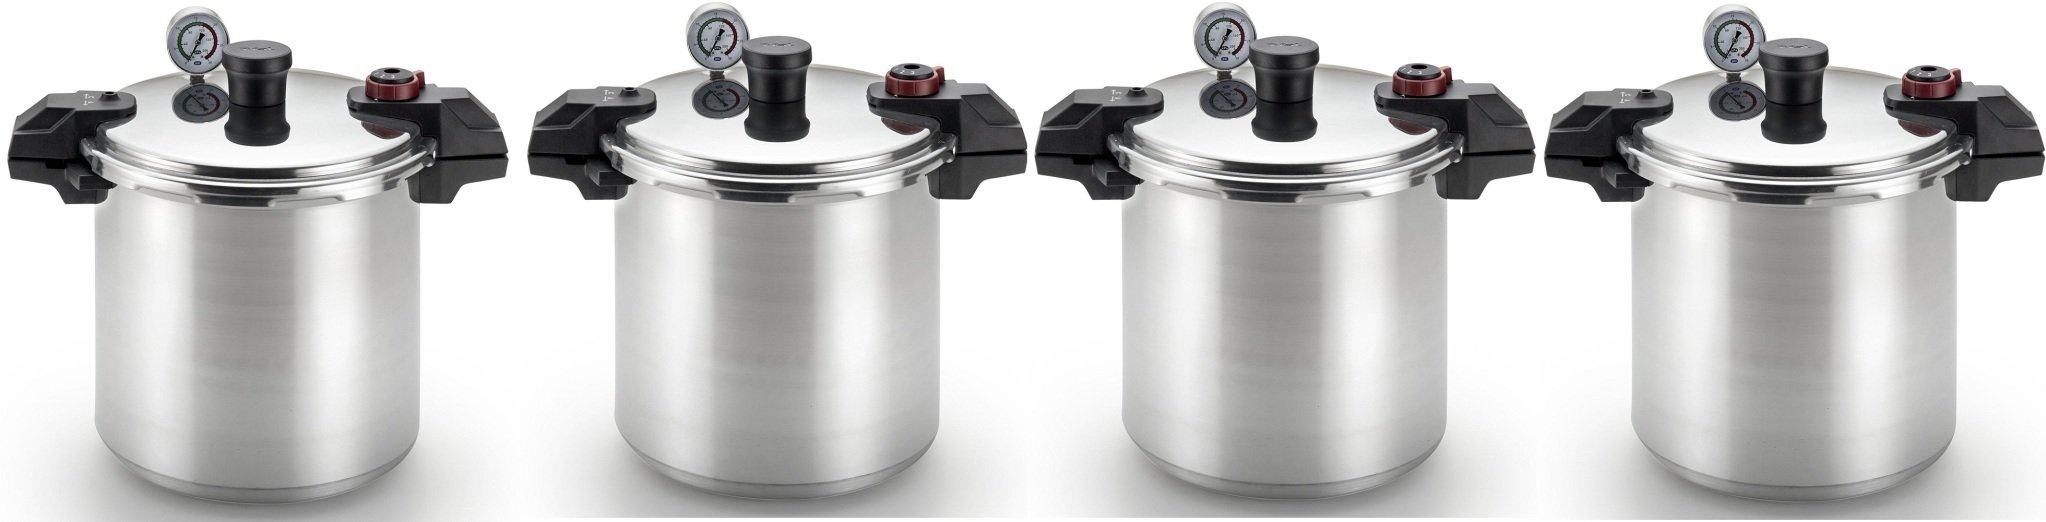 T-fal P31052 Polished Pressure Canner and Cooker with 2 Racks and 3-PSI Settings Cookware XUsilp, 22-Quart, Silver, 4 Pack